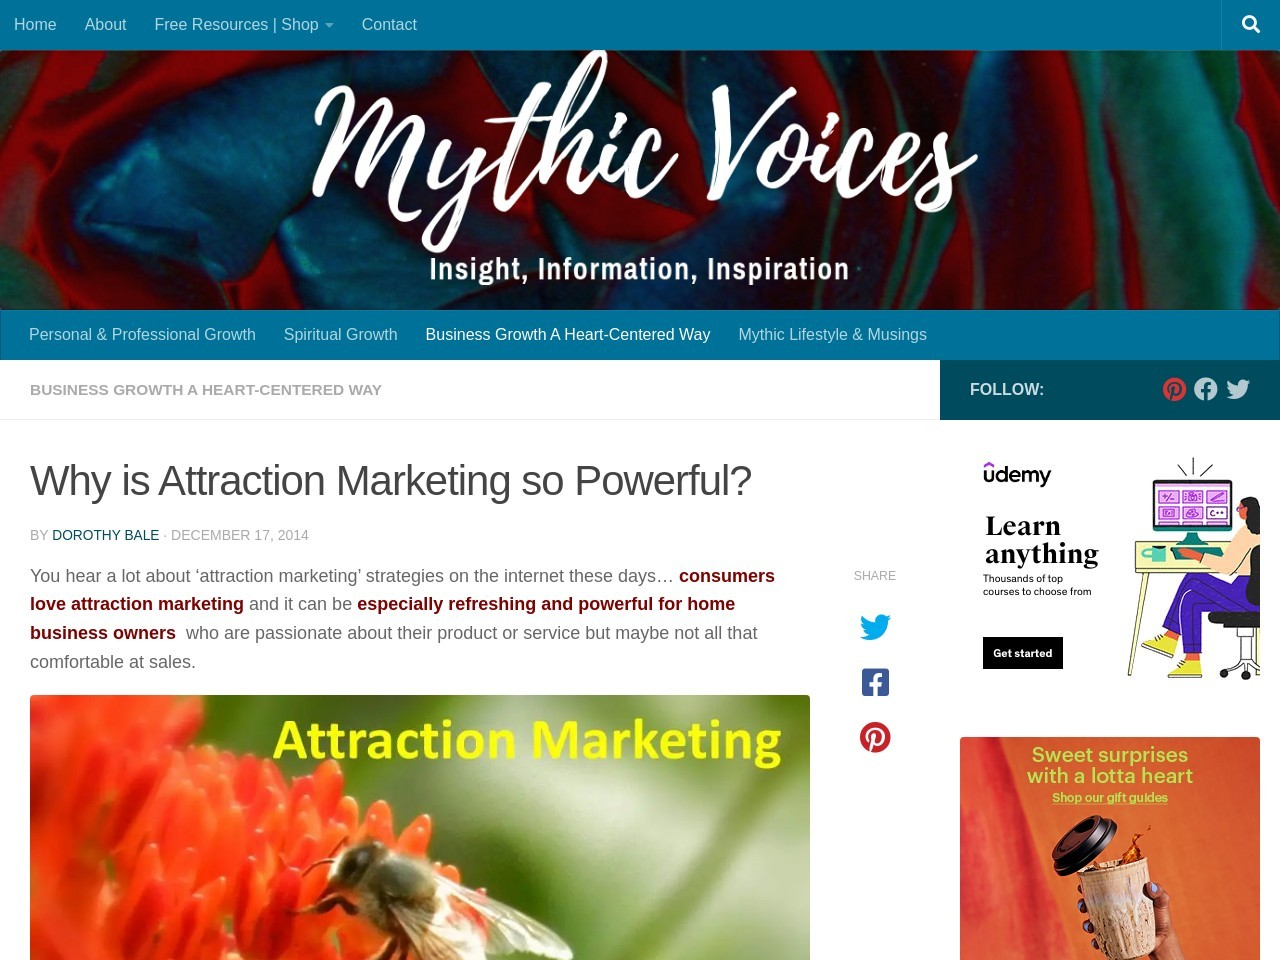 Why is Attraction Marketing so Powerful | Dorothy Bale